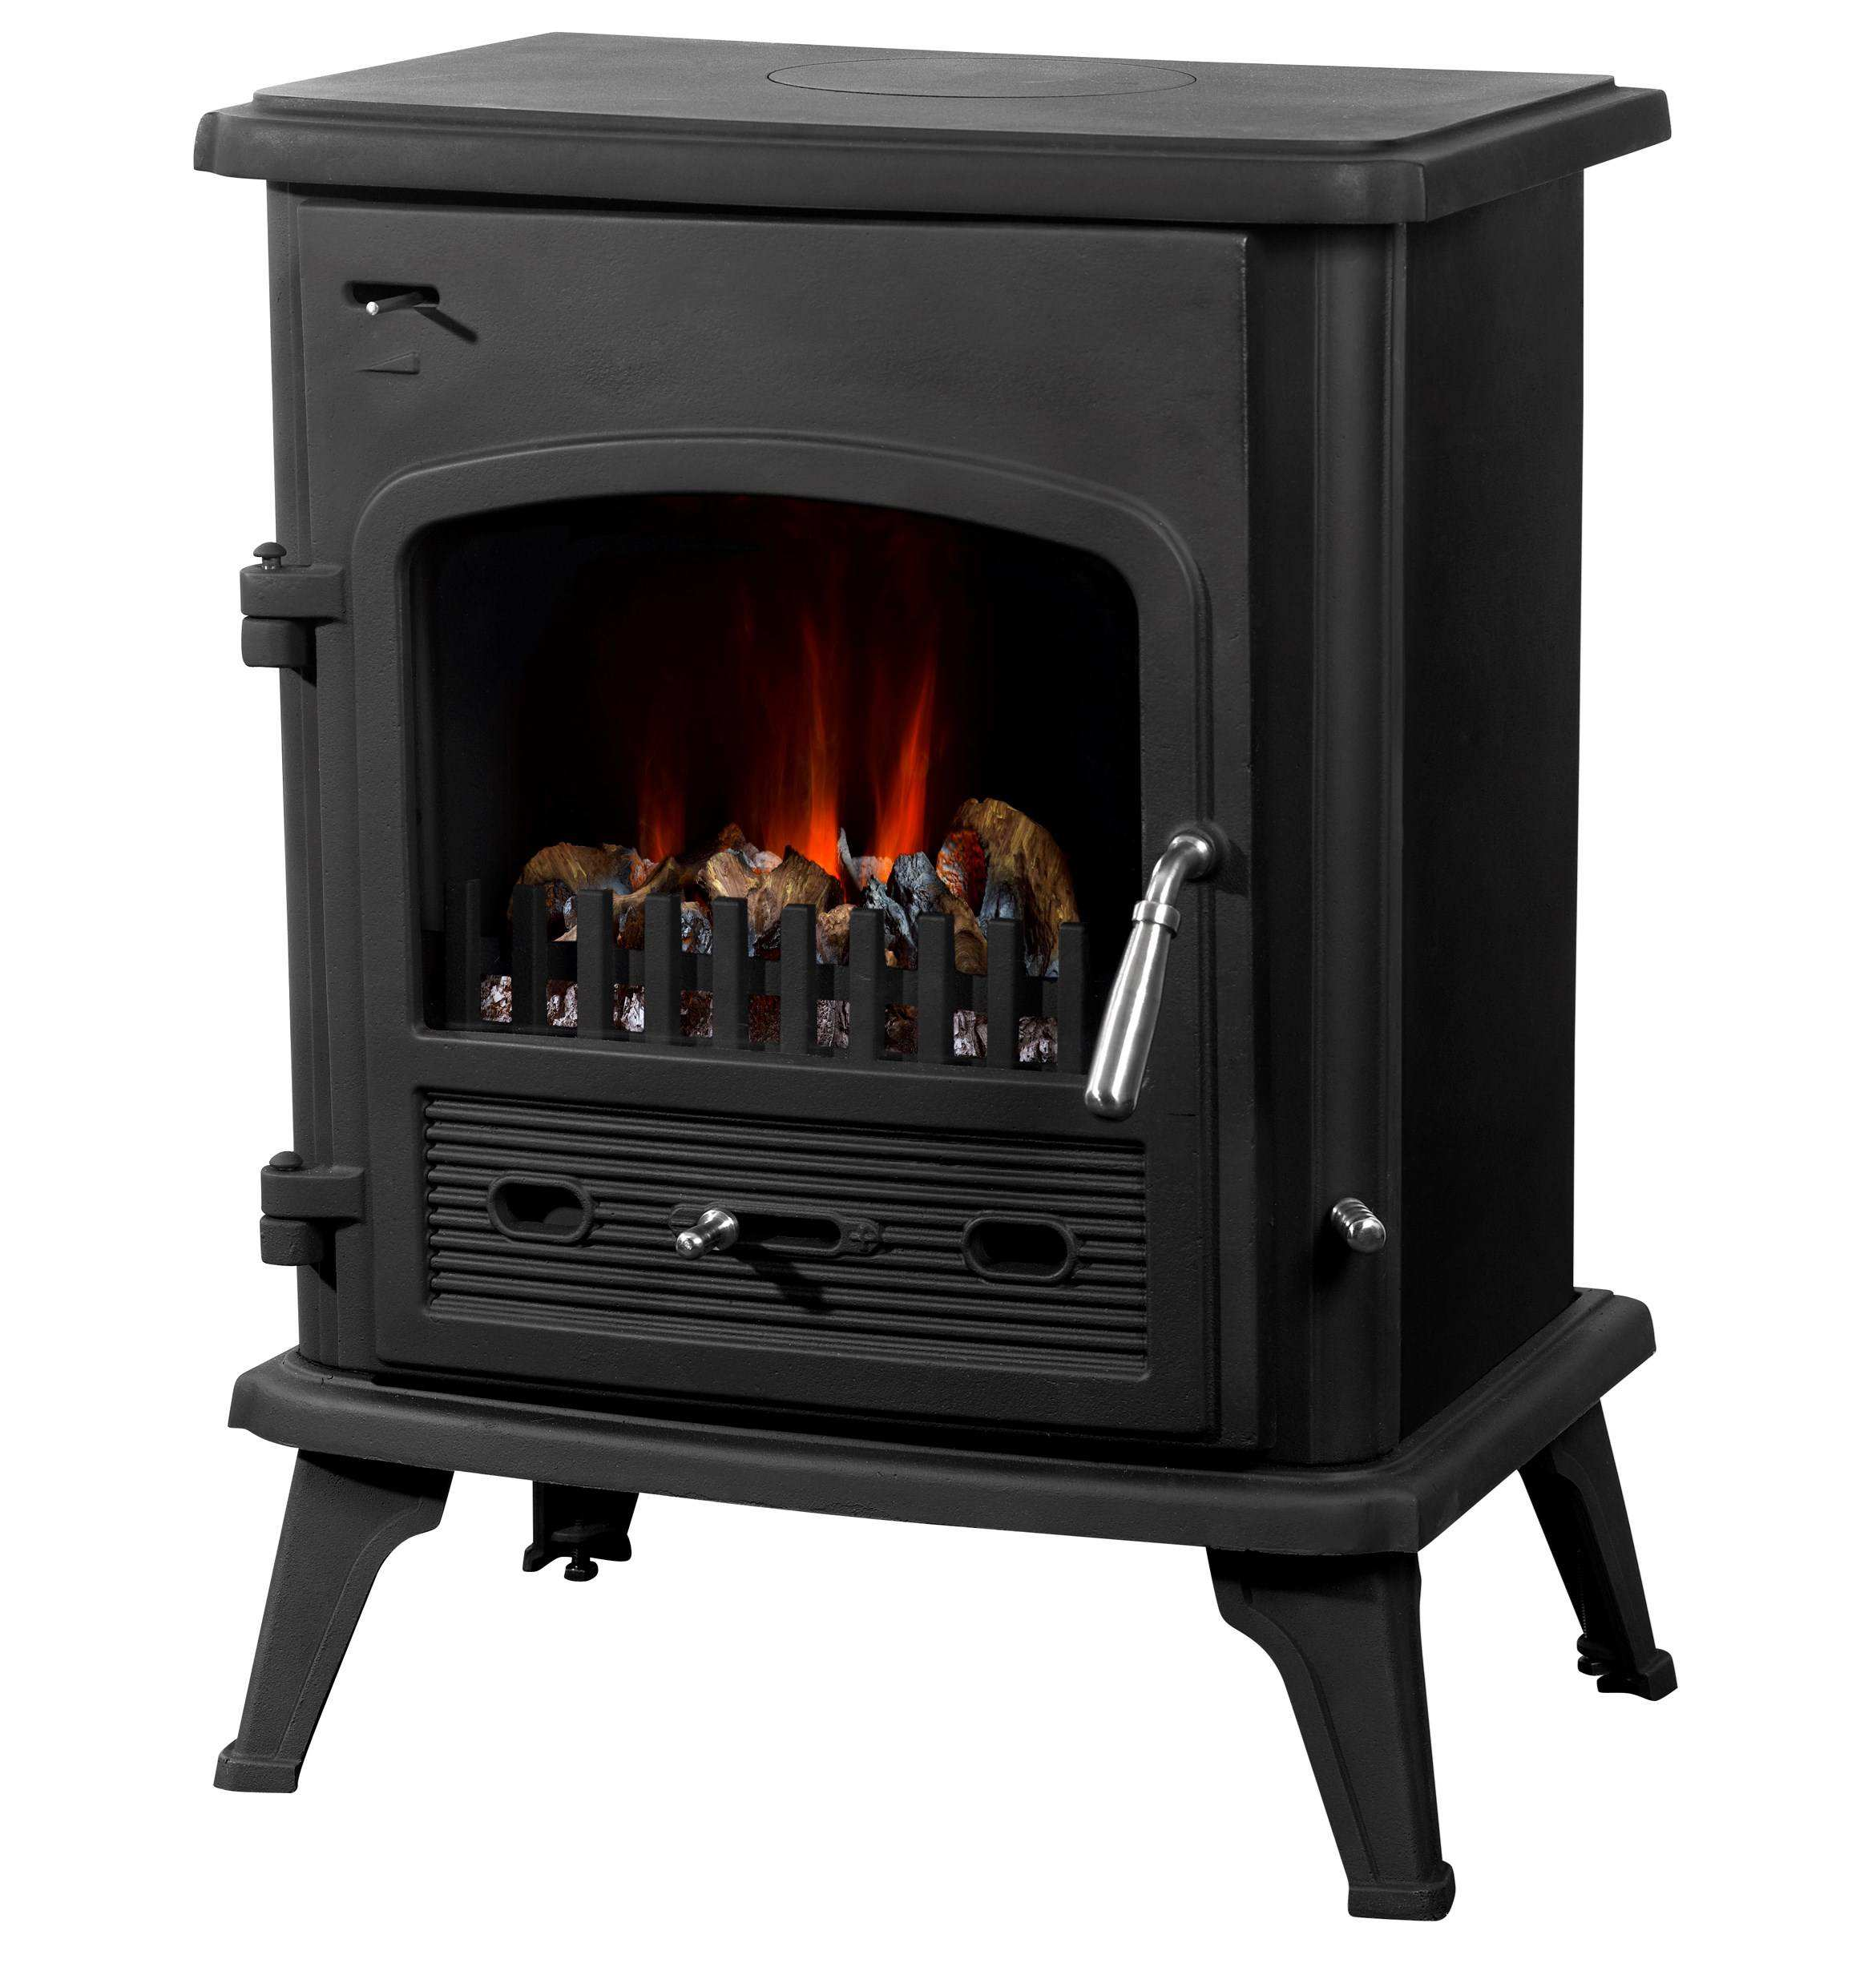 dimplex stoves best of dimplex boiler stove 13kw of dimplex stoves